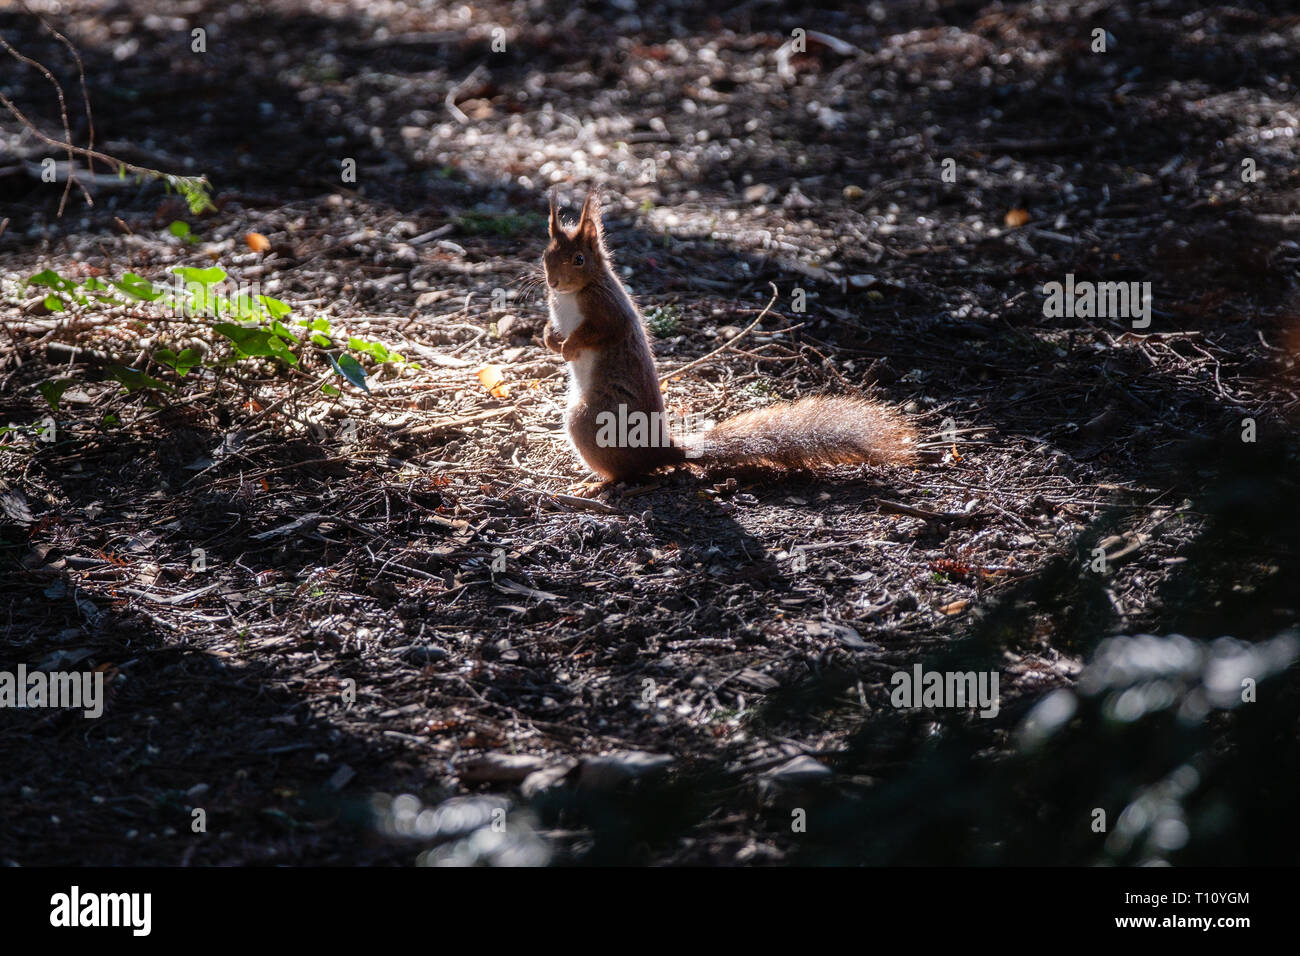 squirrel standing on its hind legs in the woods - Stock Image